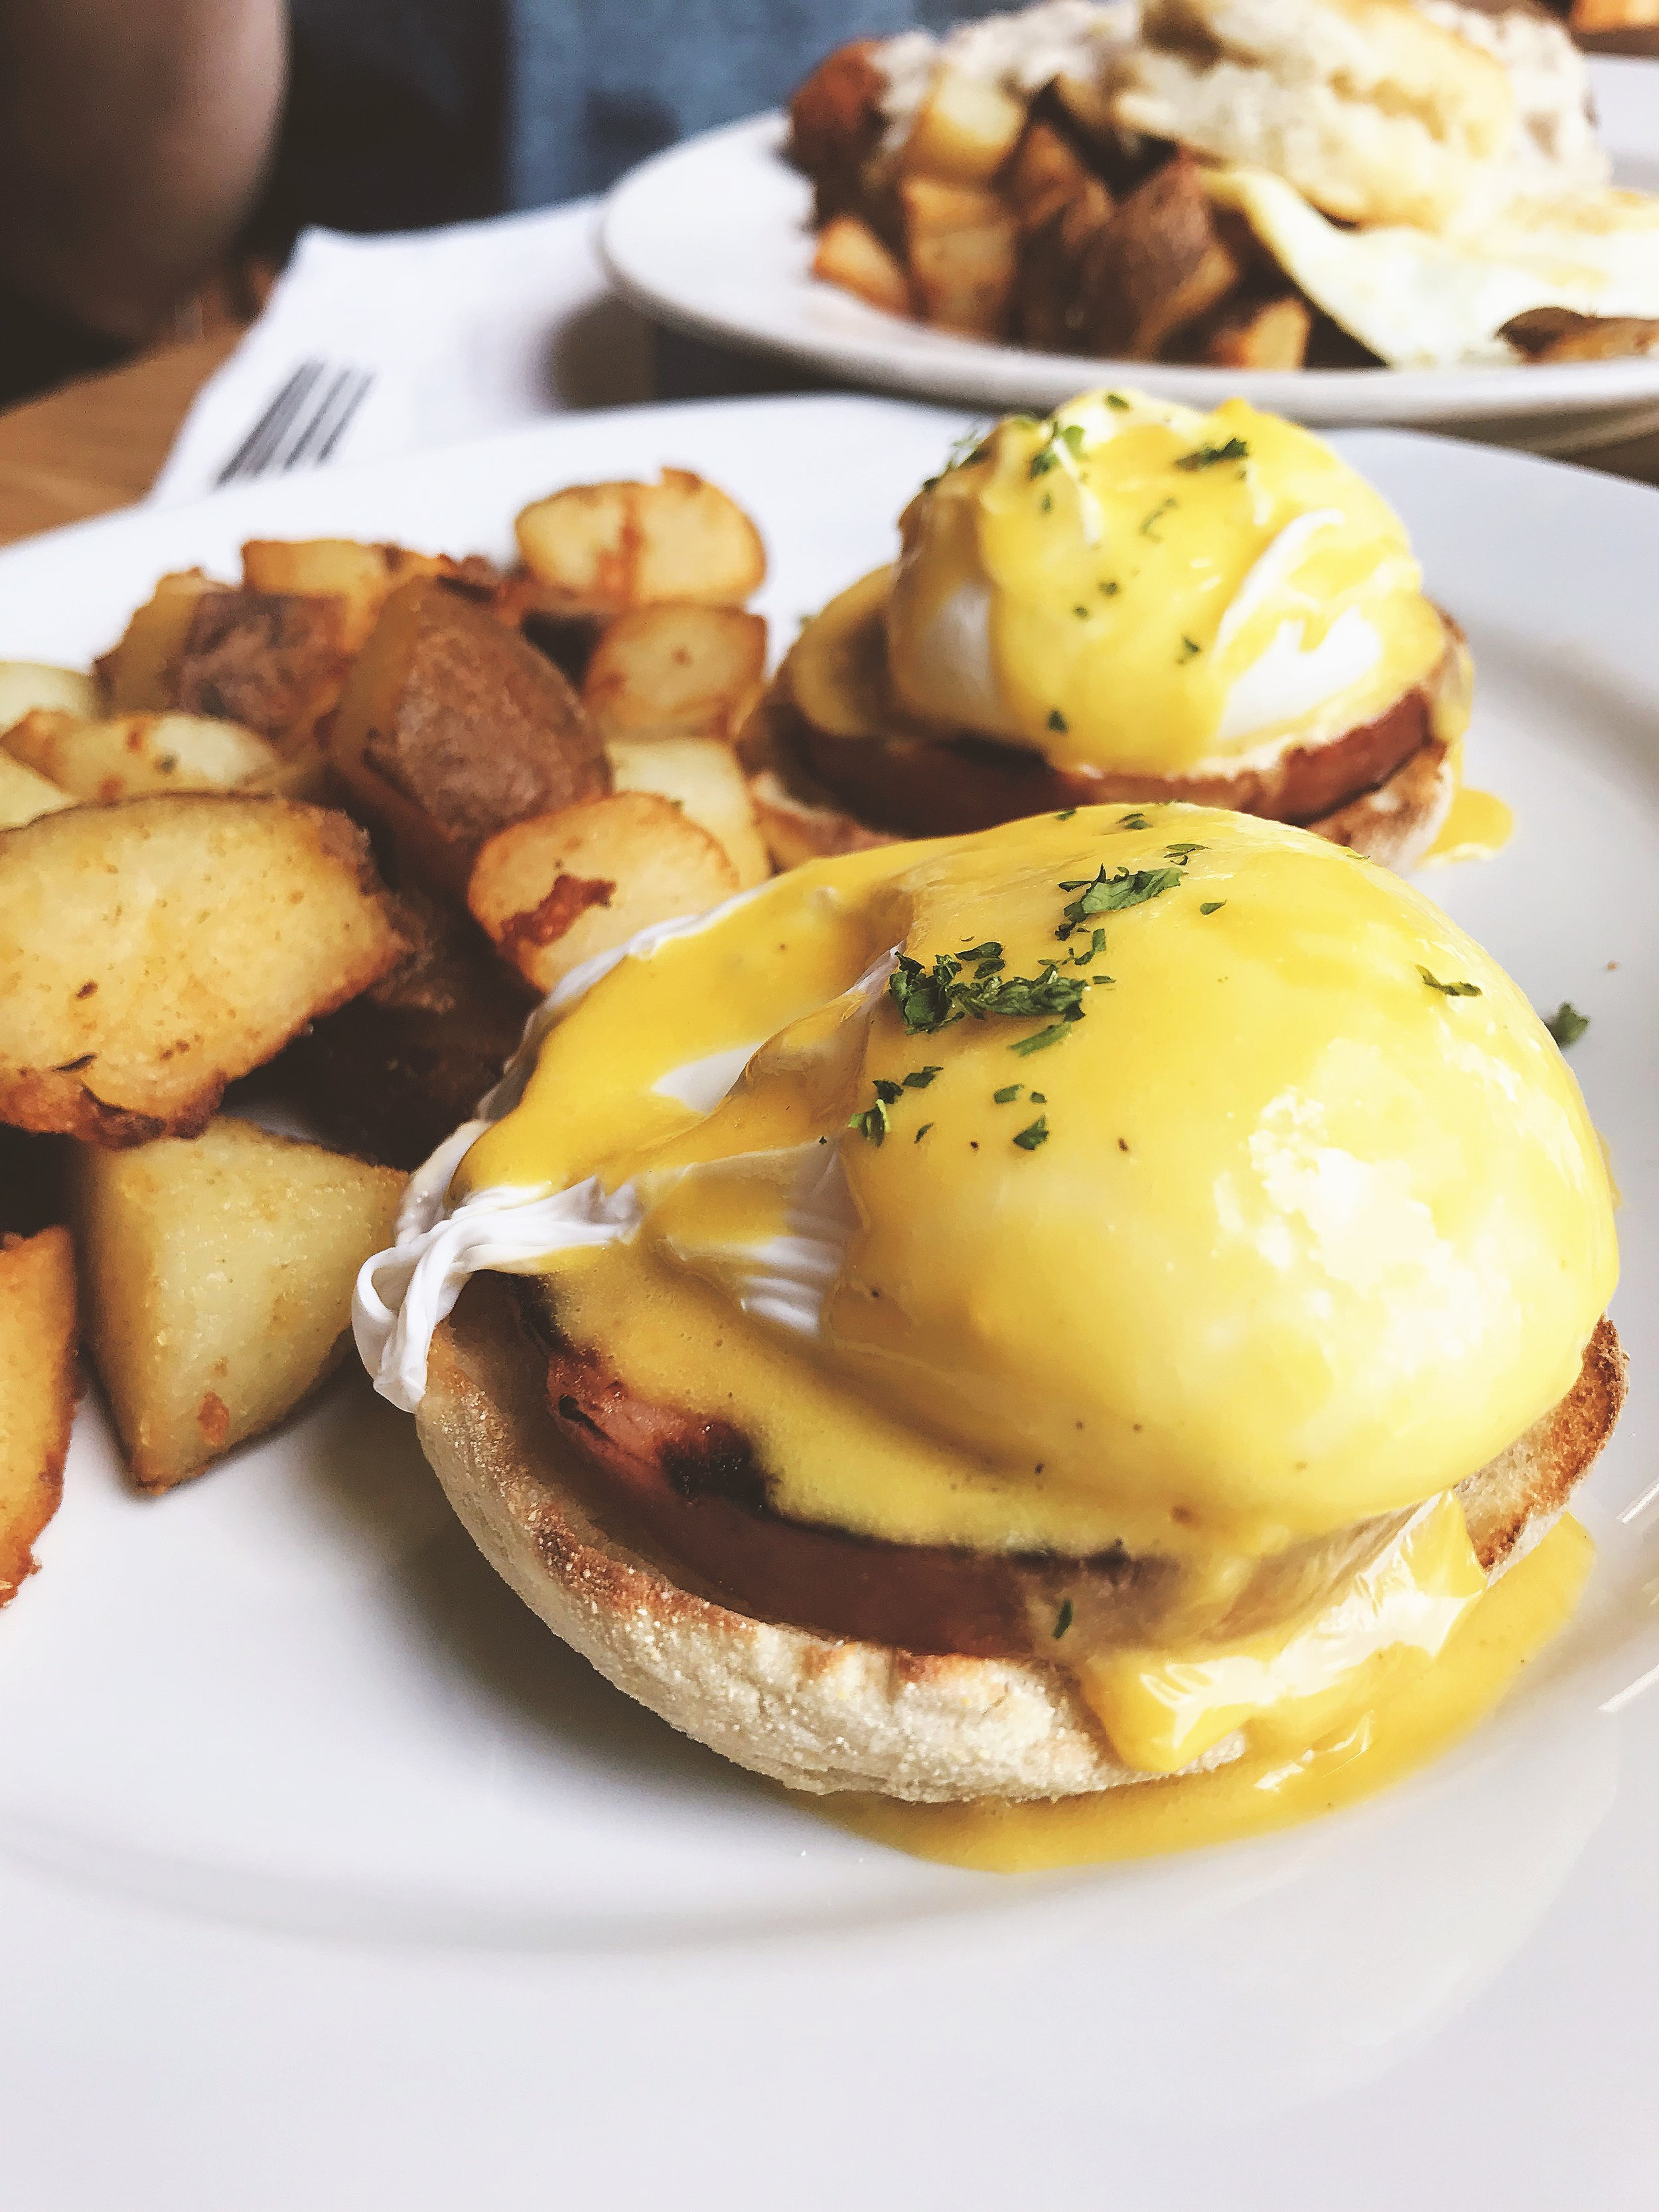 Krista's Go-to Order: Eggs Benedict with home fries